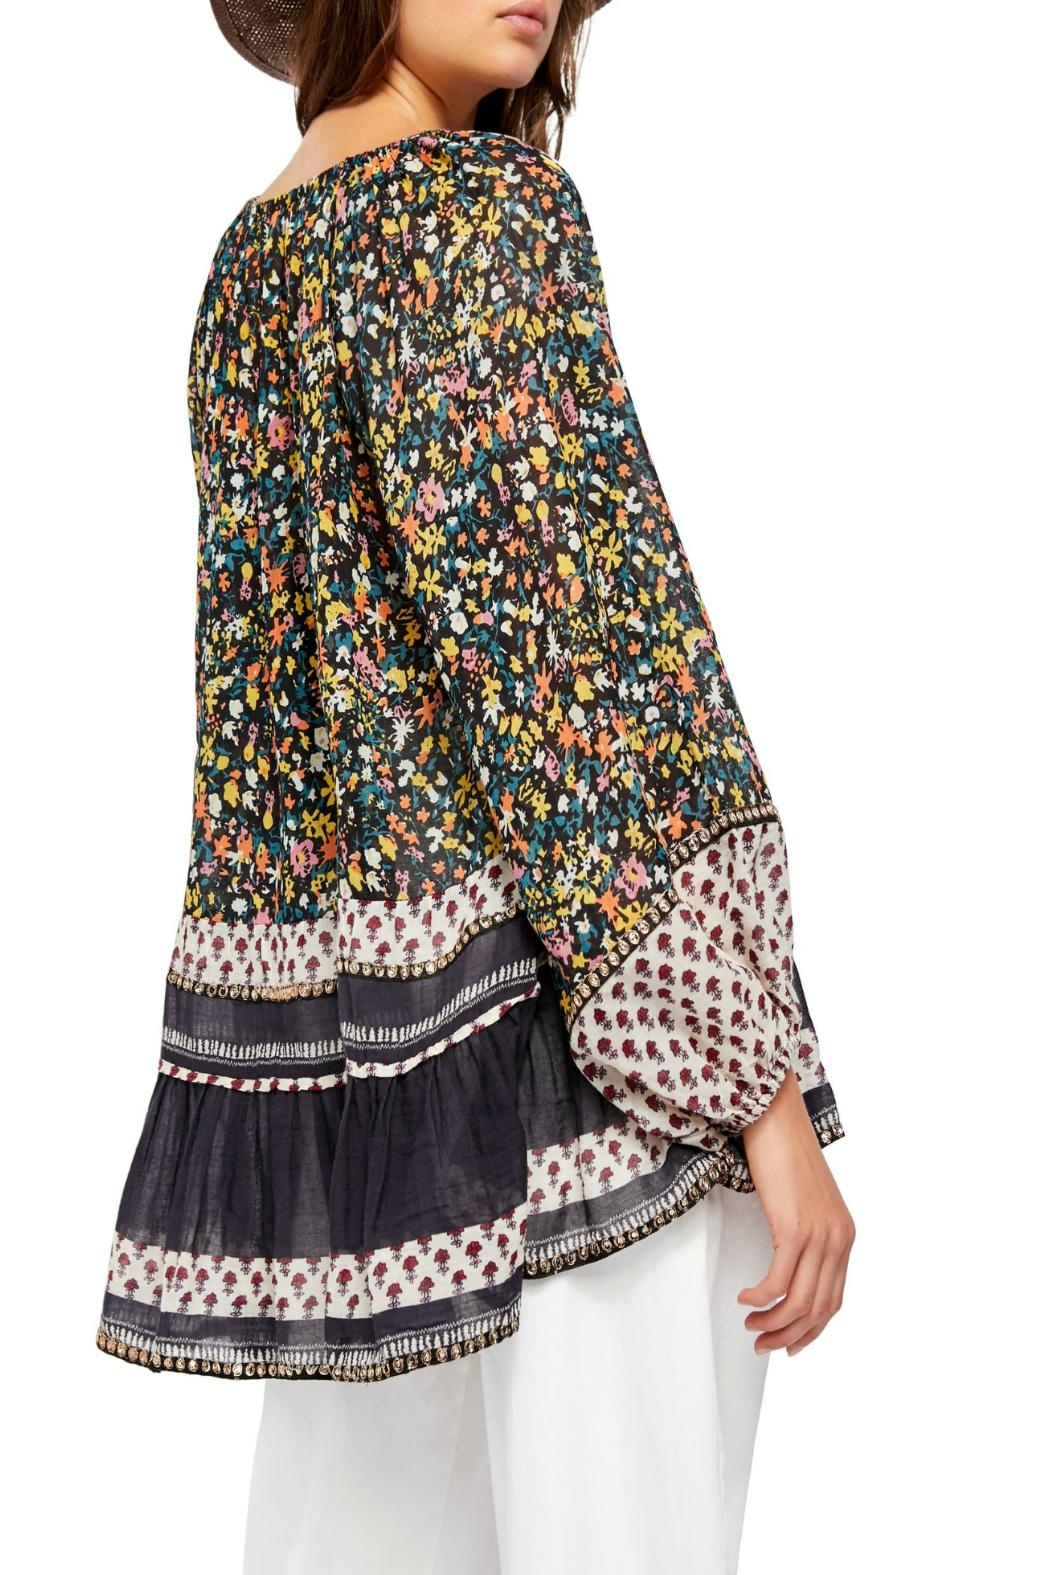 Free People Gardenia Floral-Print Tunic - Front Full Image